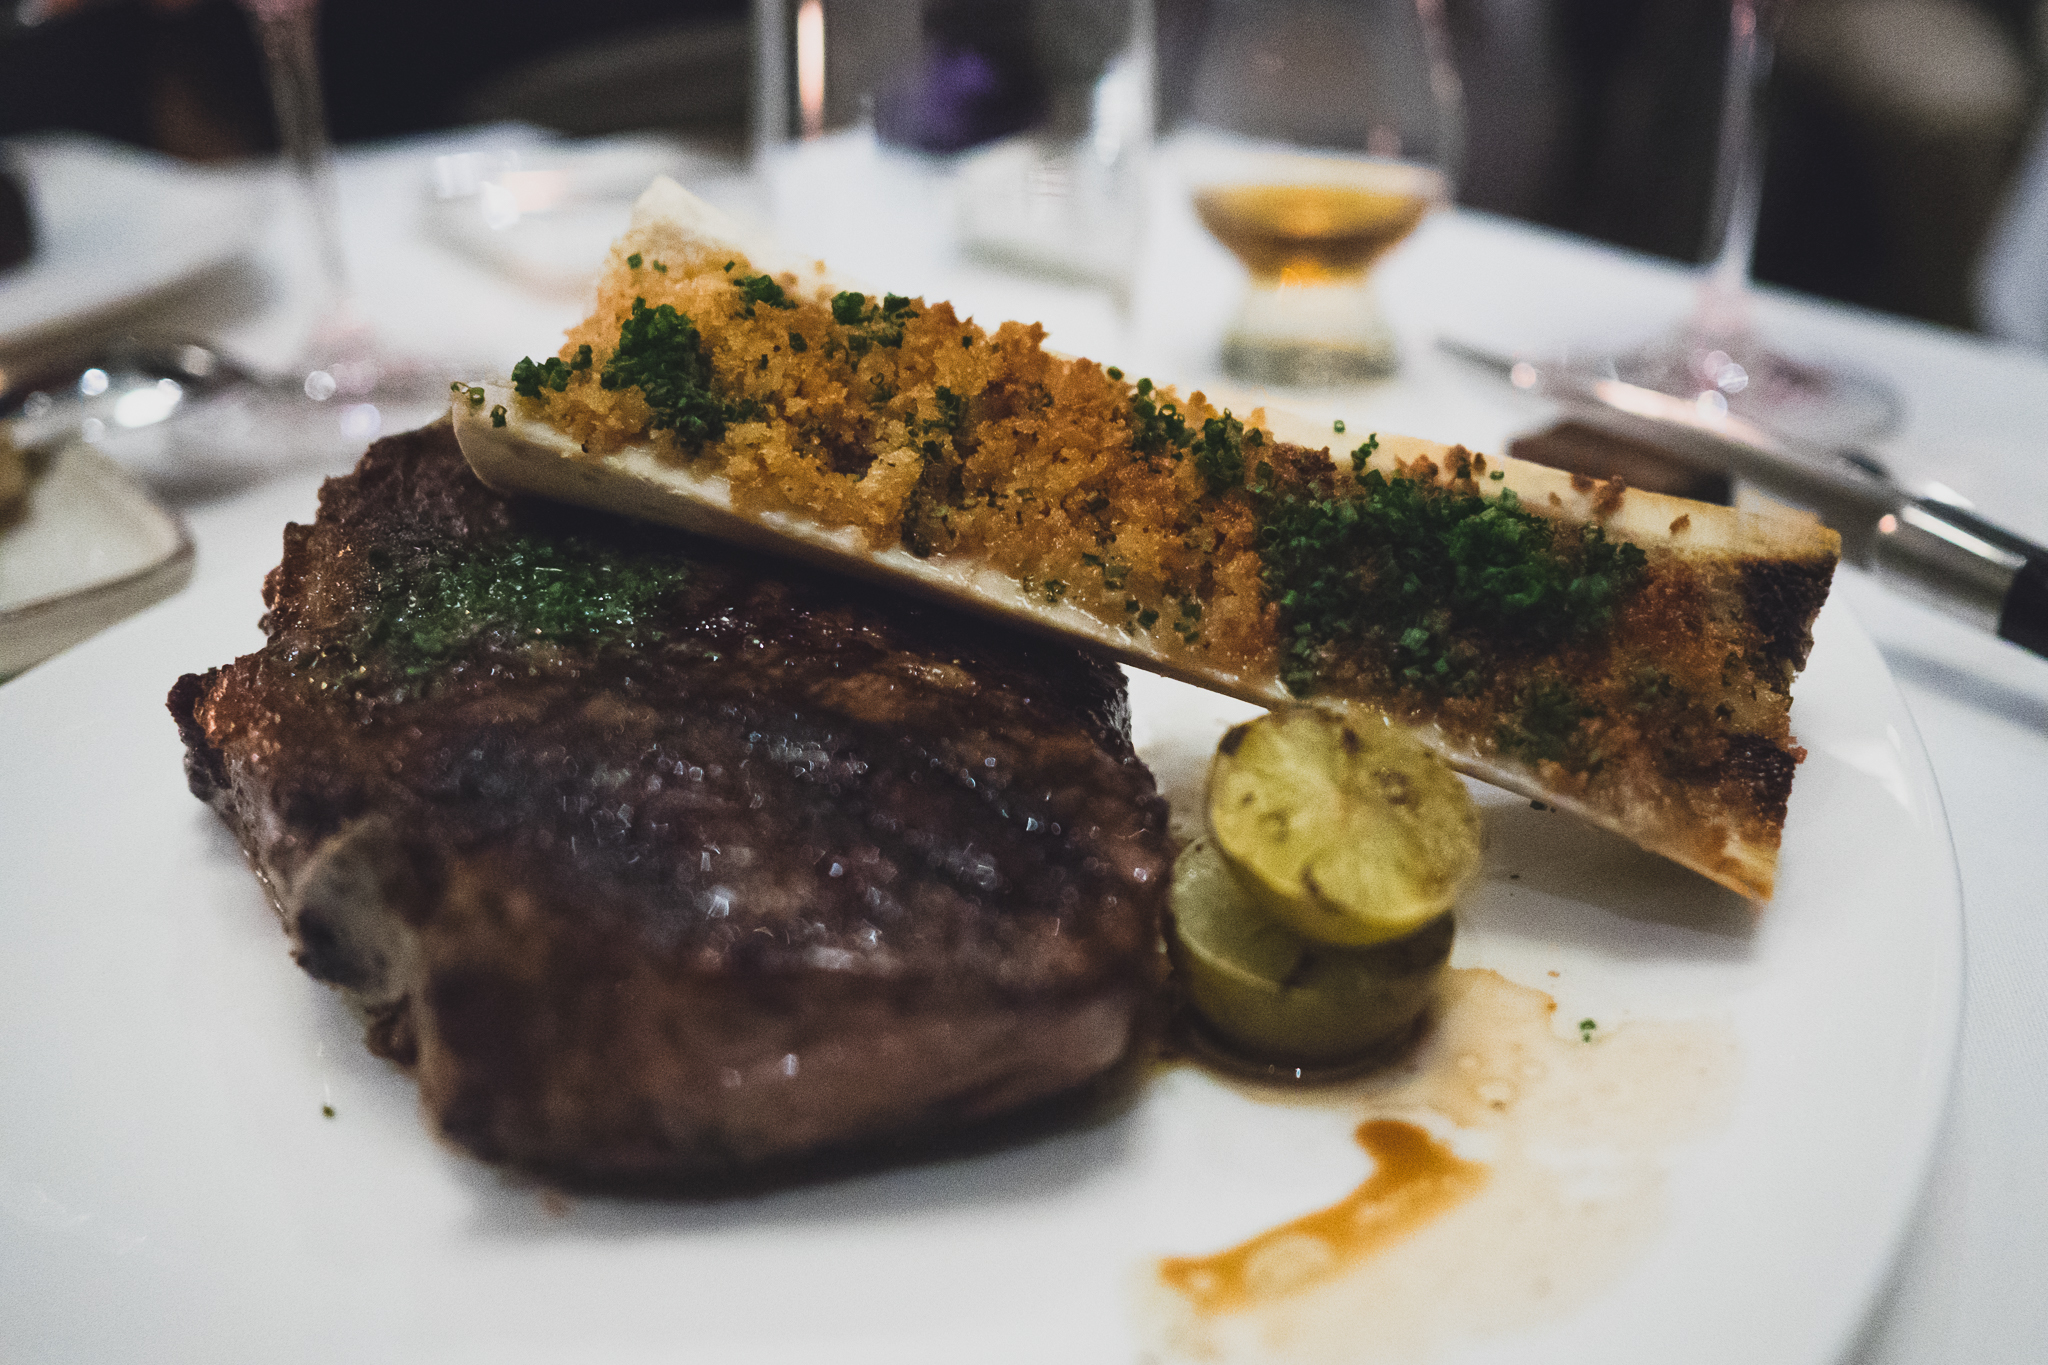 bone in new york with grilled sudachi, chive butter and bone marrow enhancement.